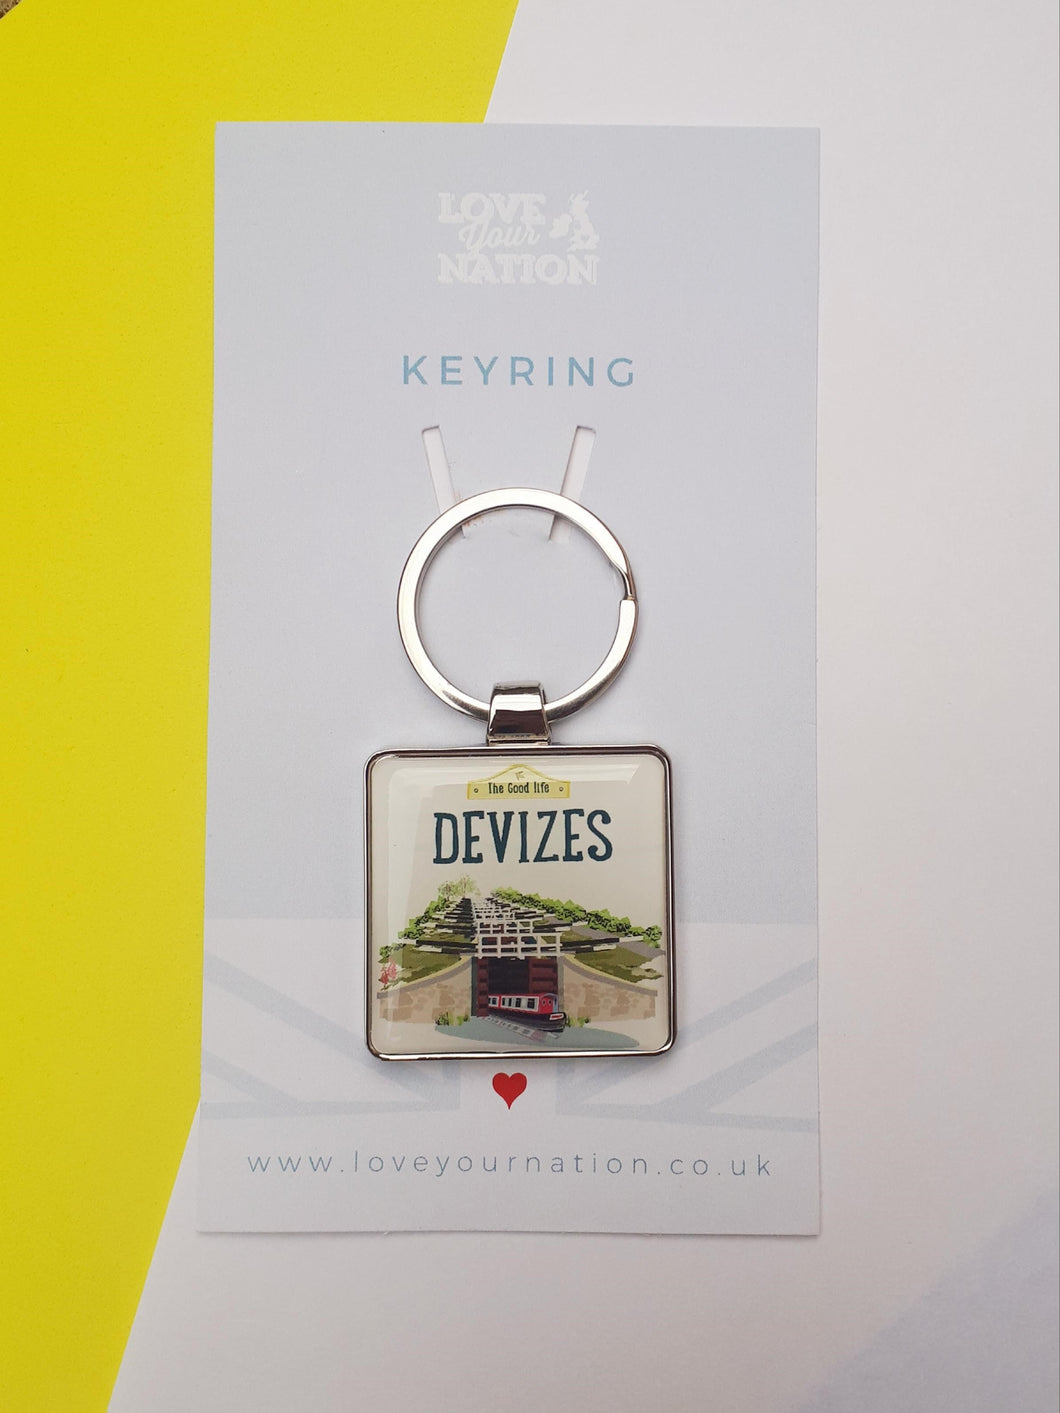 Devizes The good life caen hill canal boat locks keyring from beezes